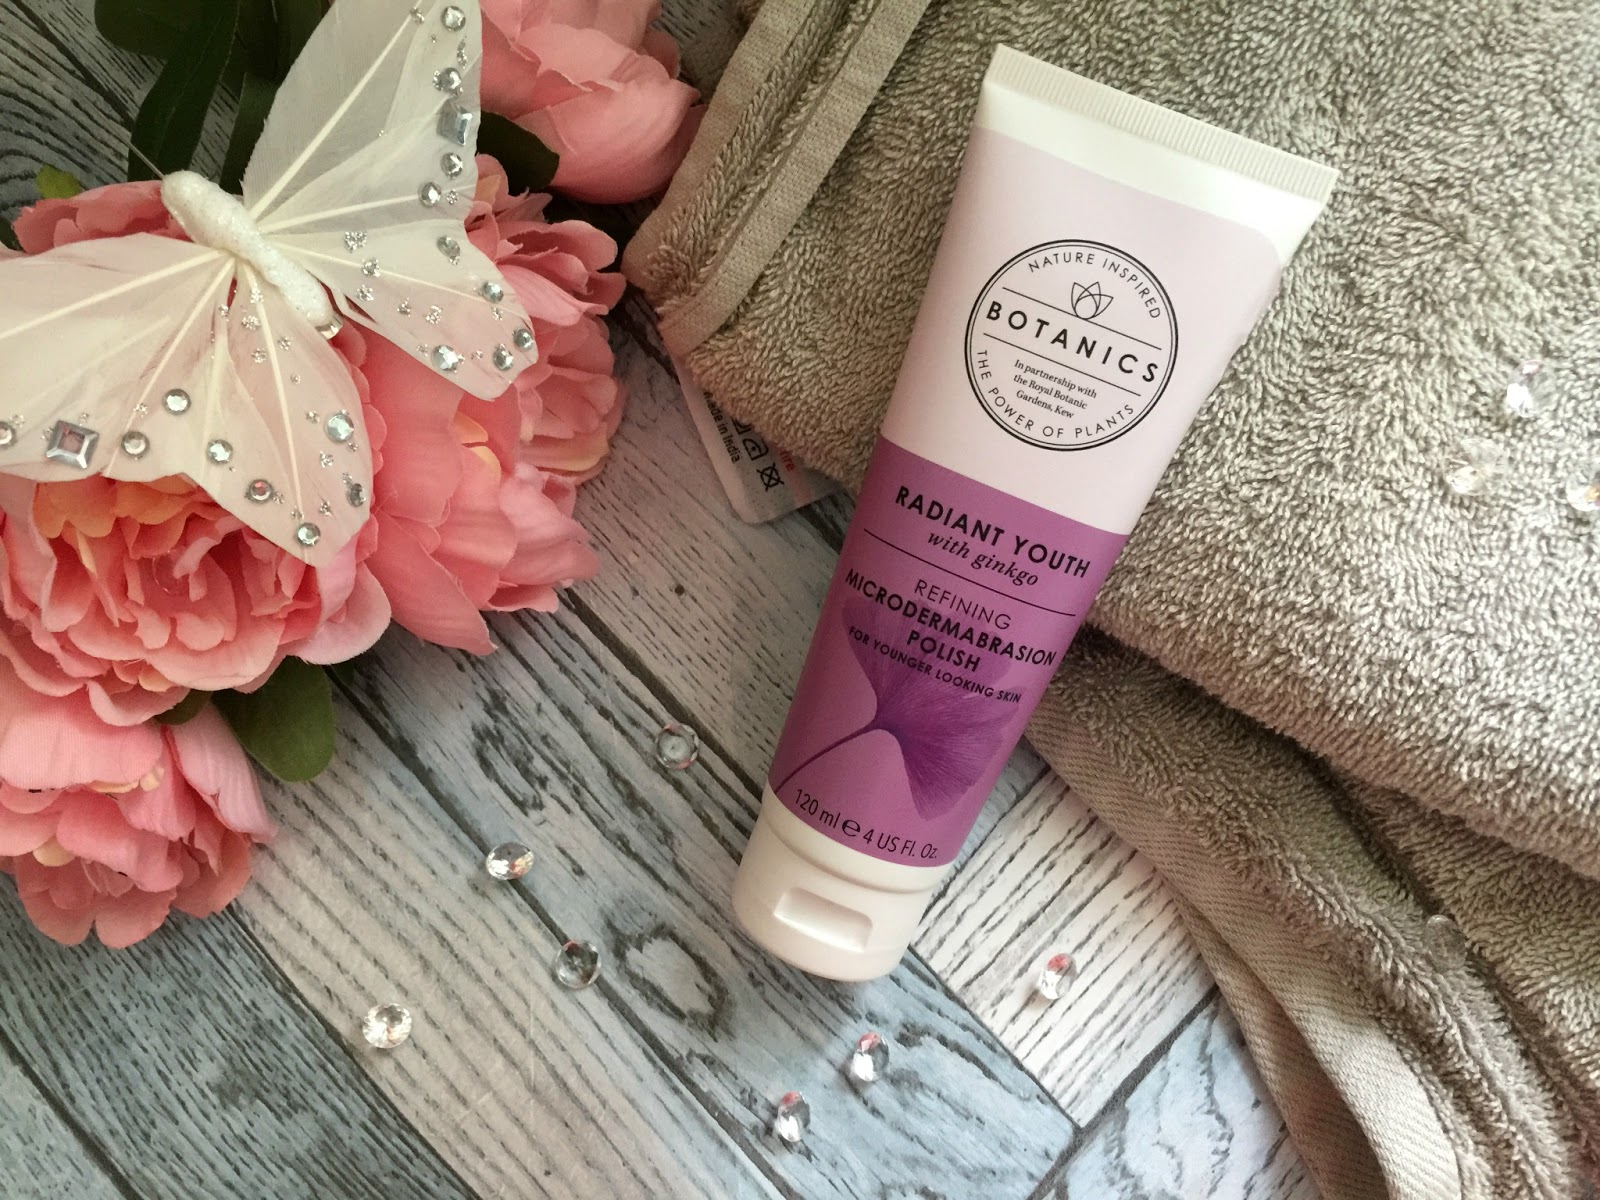 boots radiant youth microdermabrasion polish